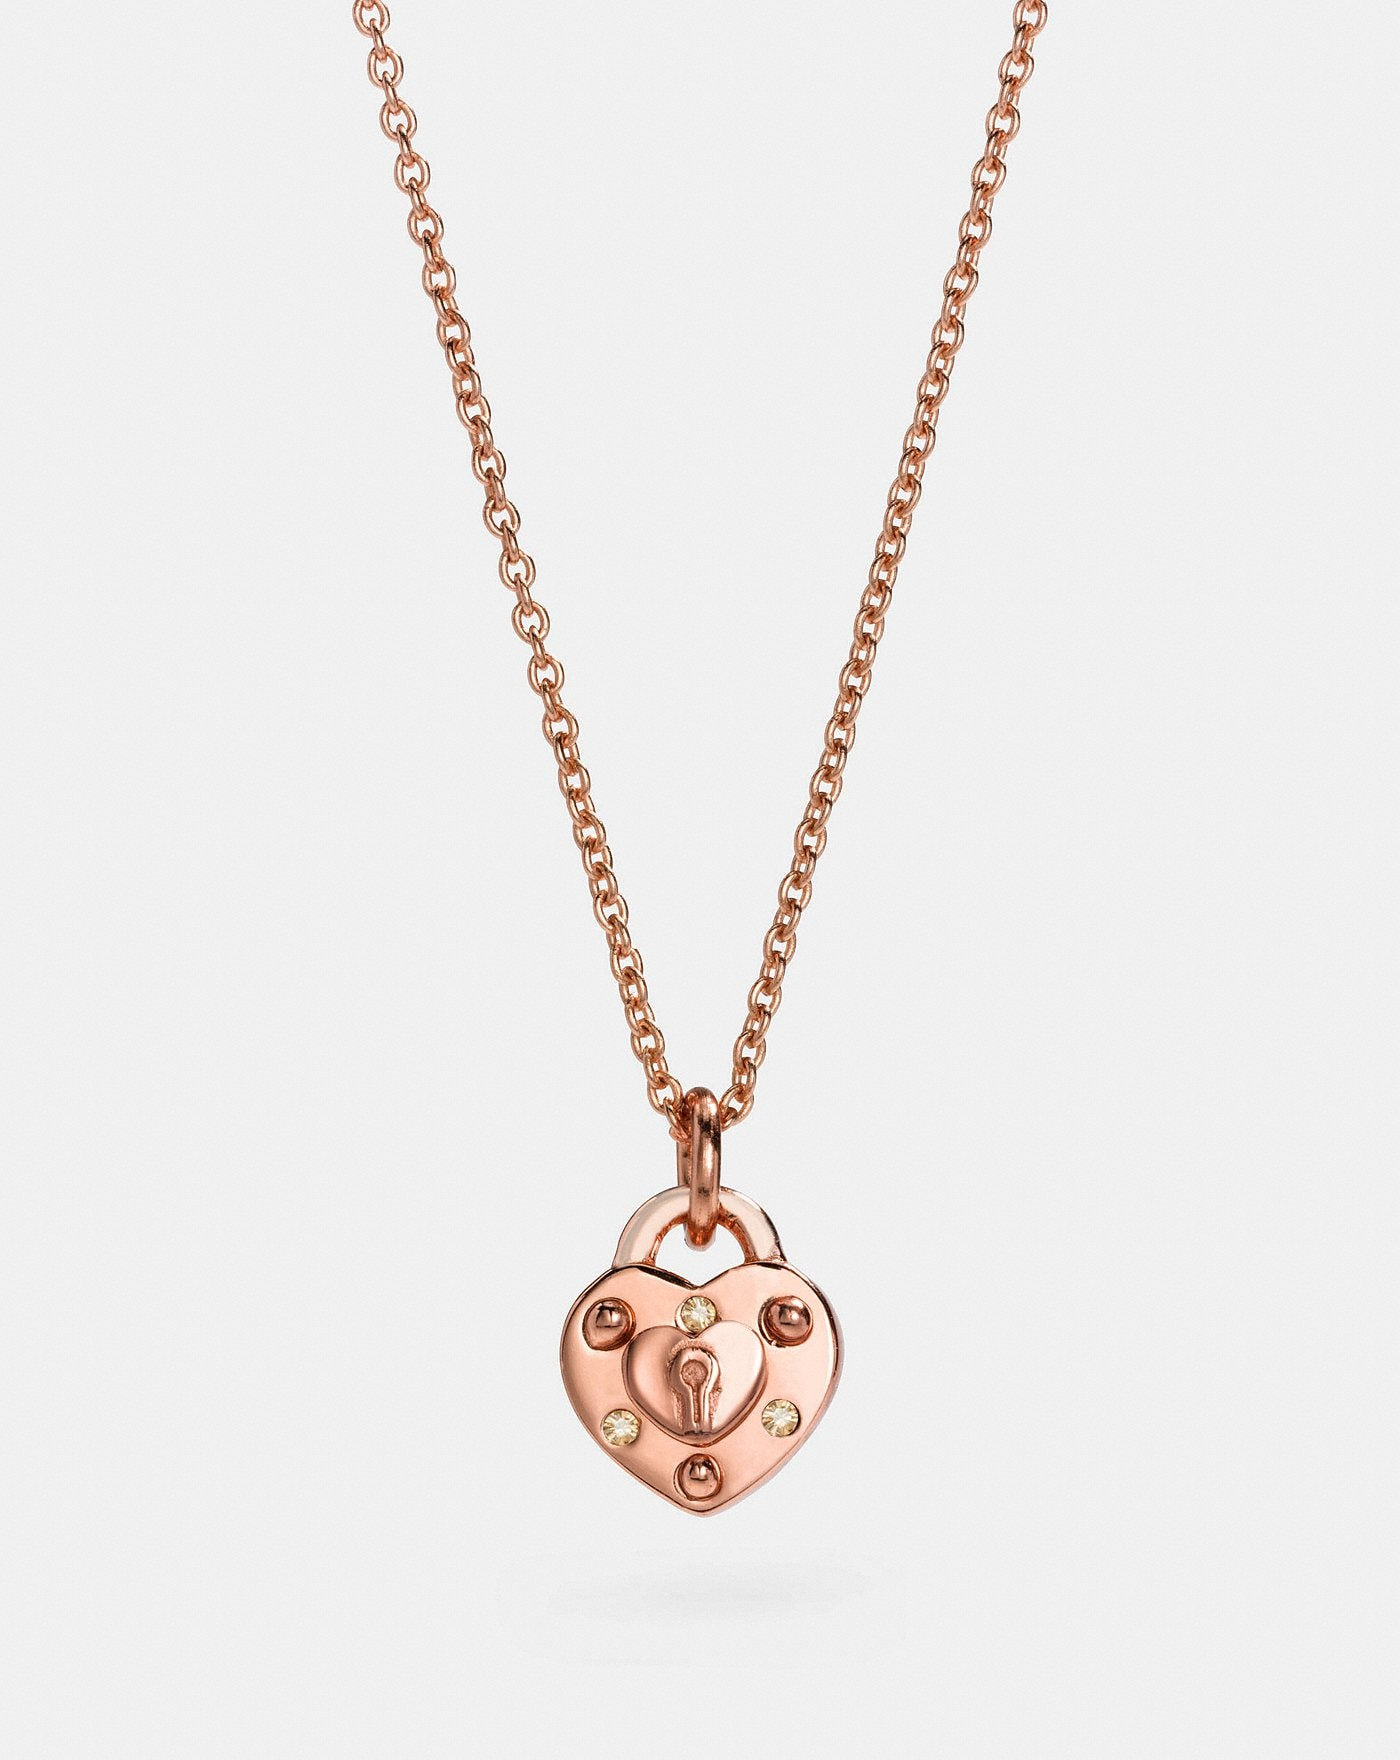 melissa products white heart jewellery shopify diamond mini gold harris necklace